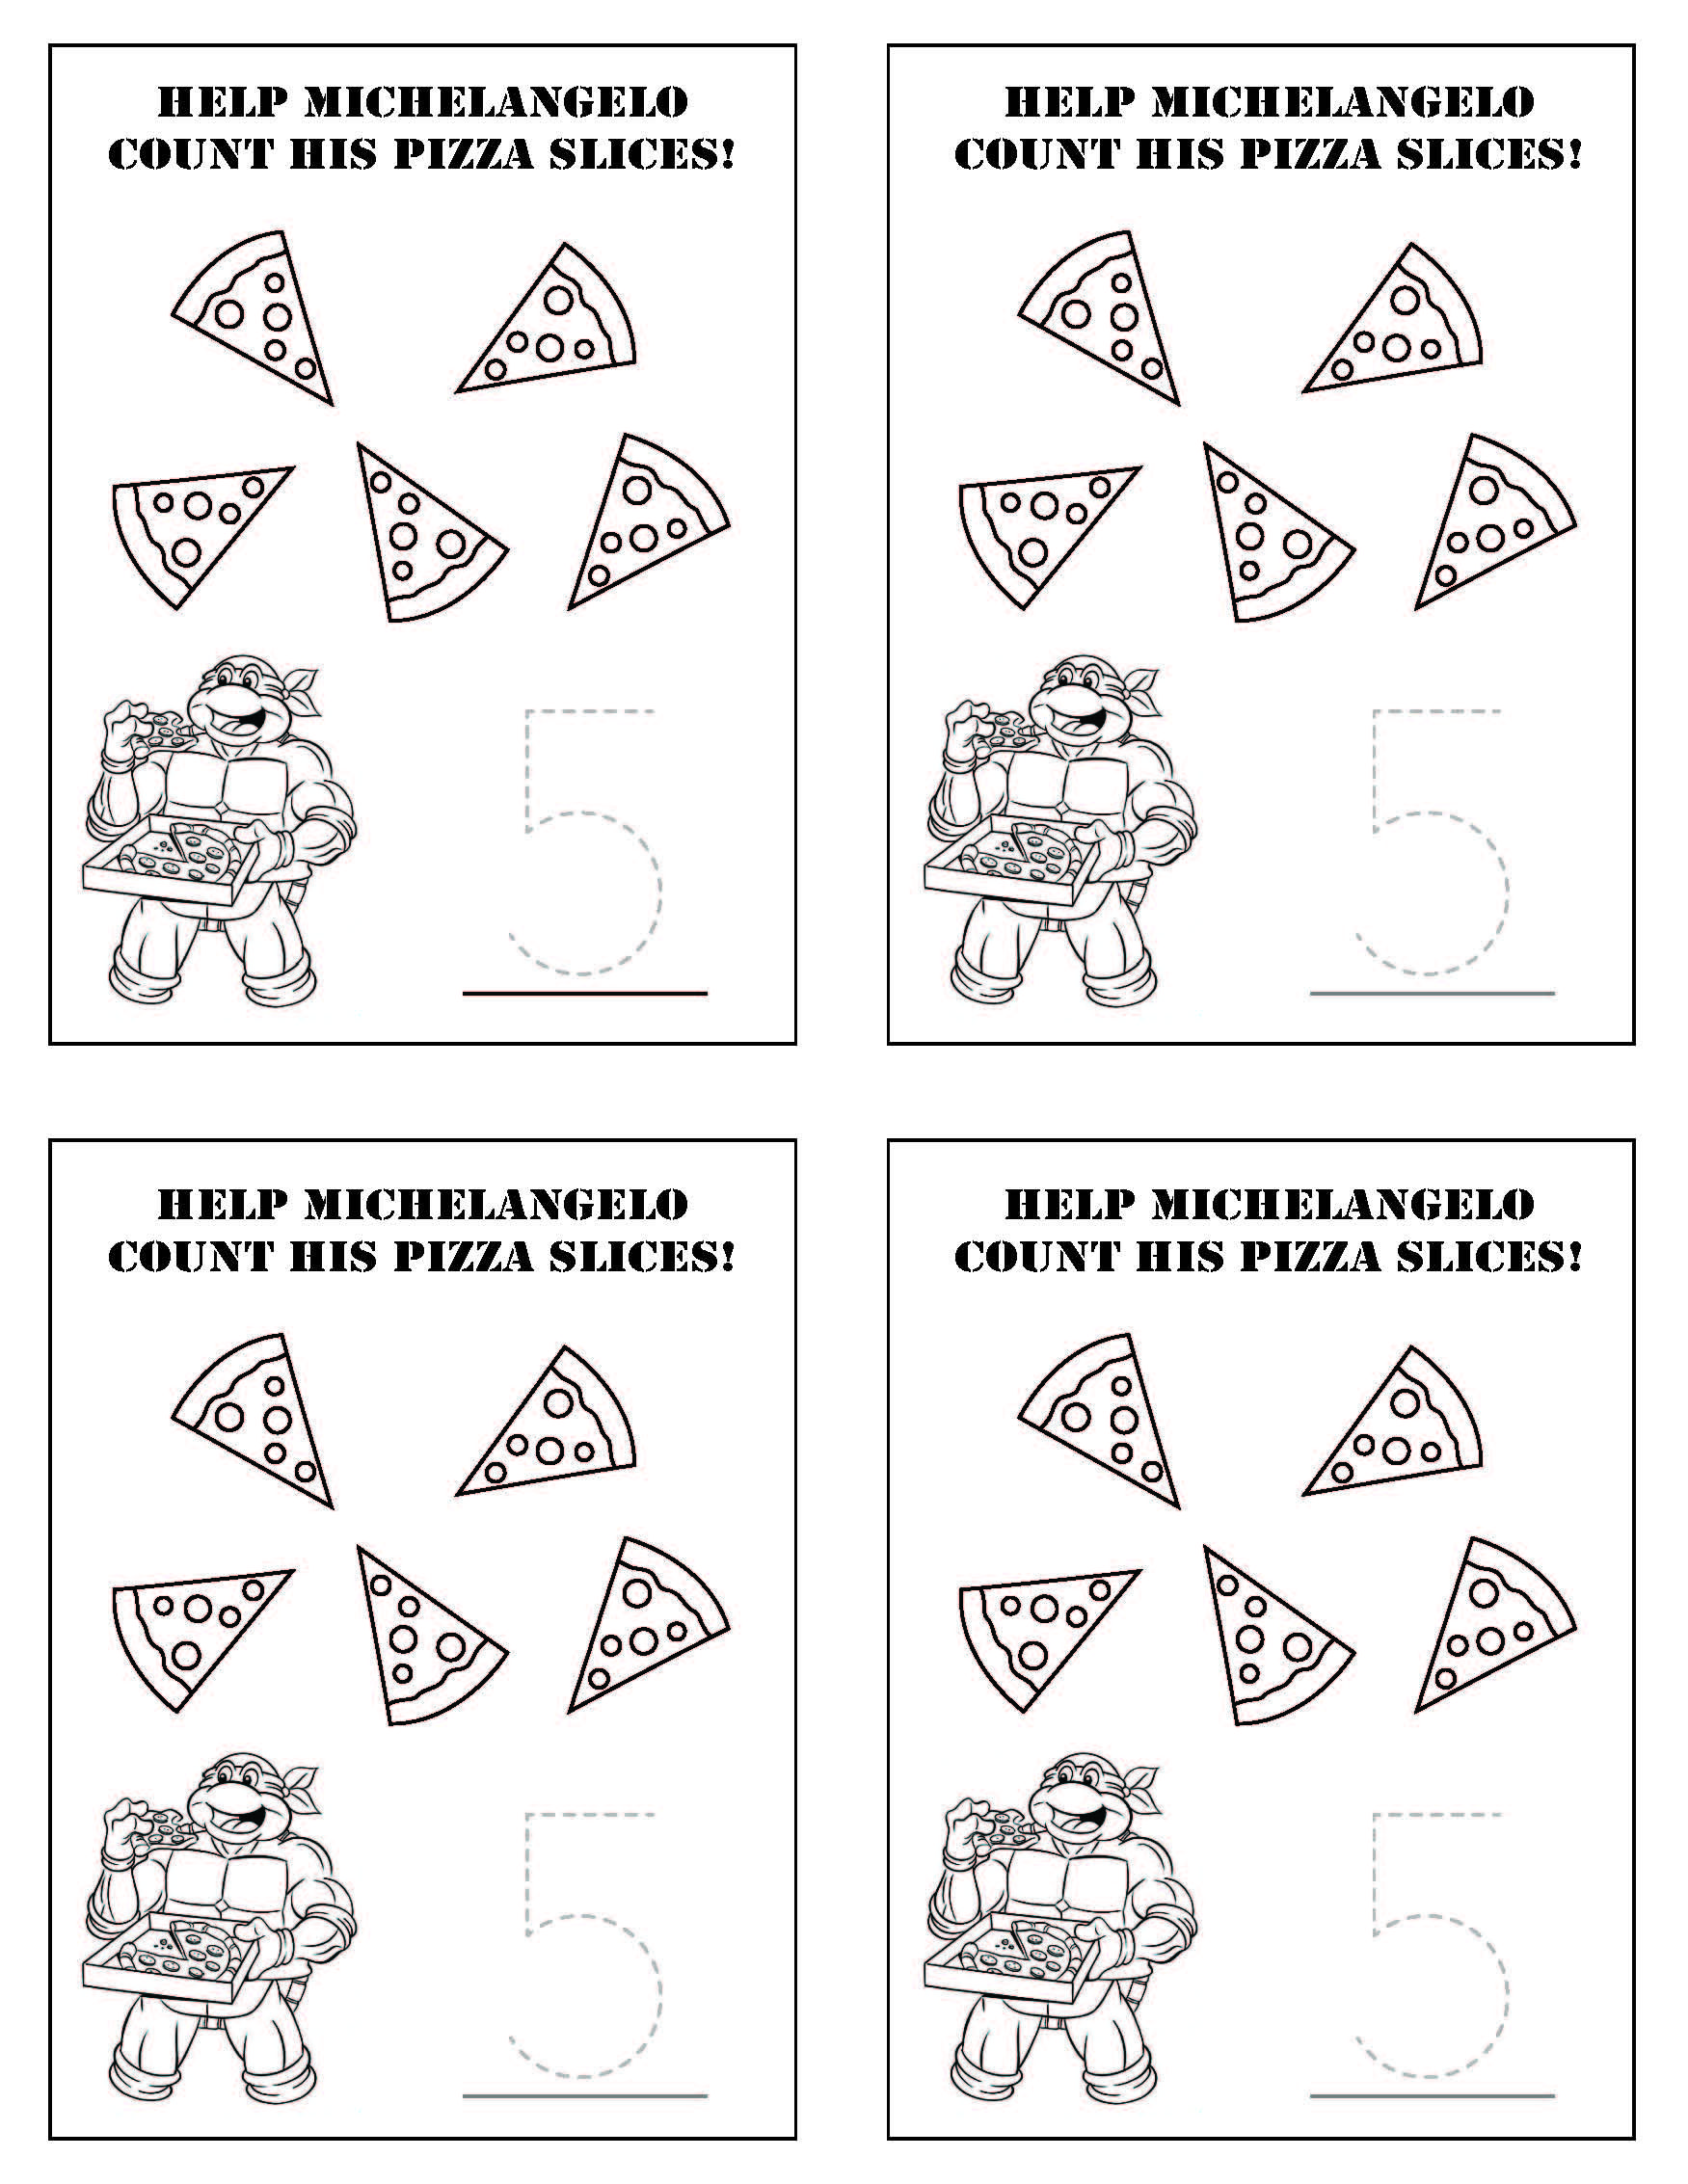 Teenage Mutant Ninja Turtles Tmnt Counting Activity Sheet